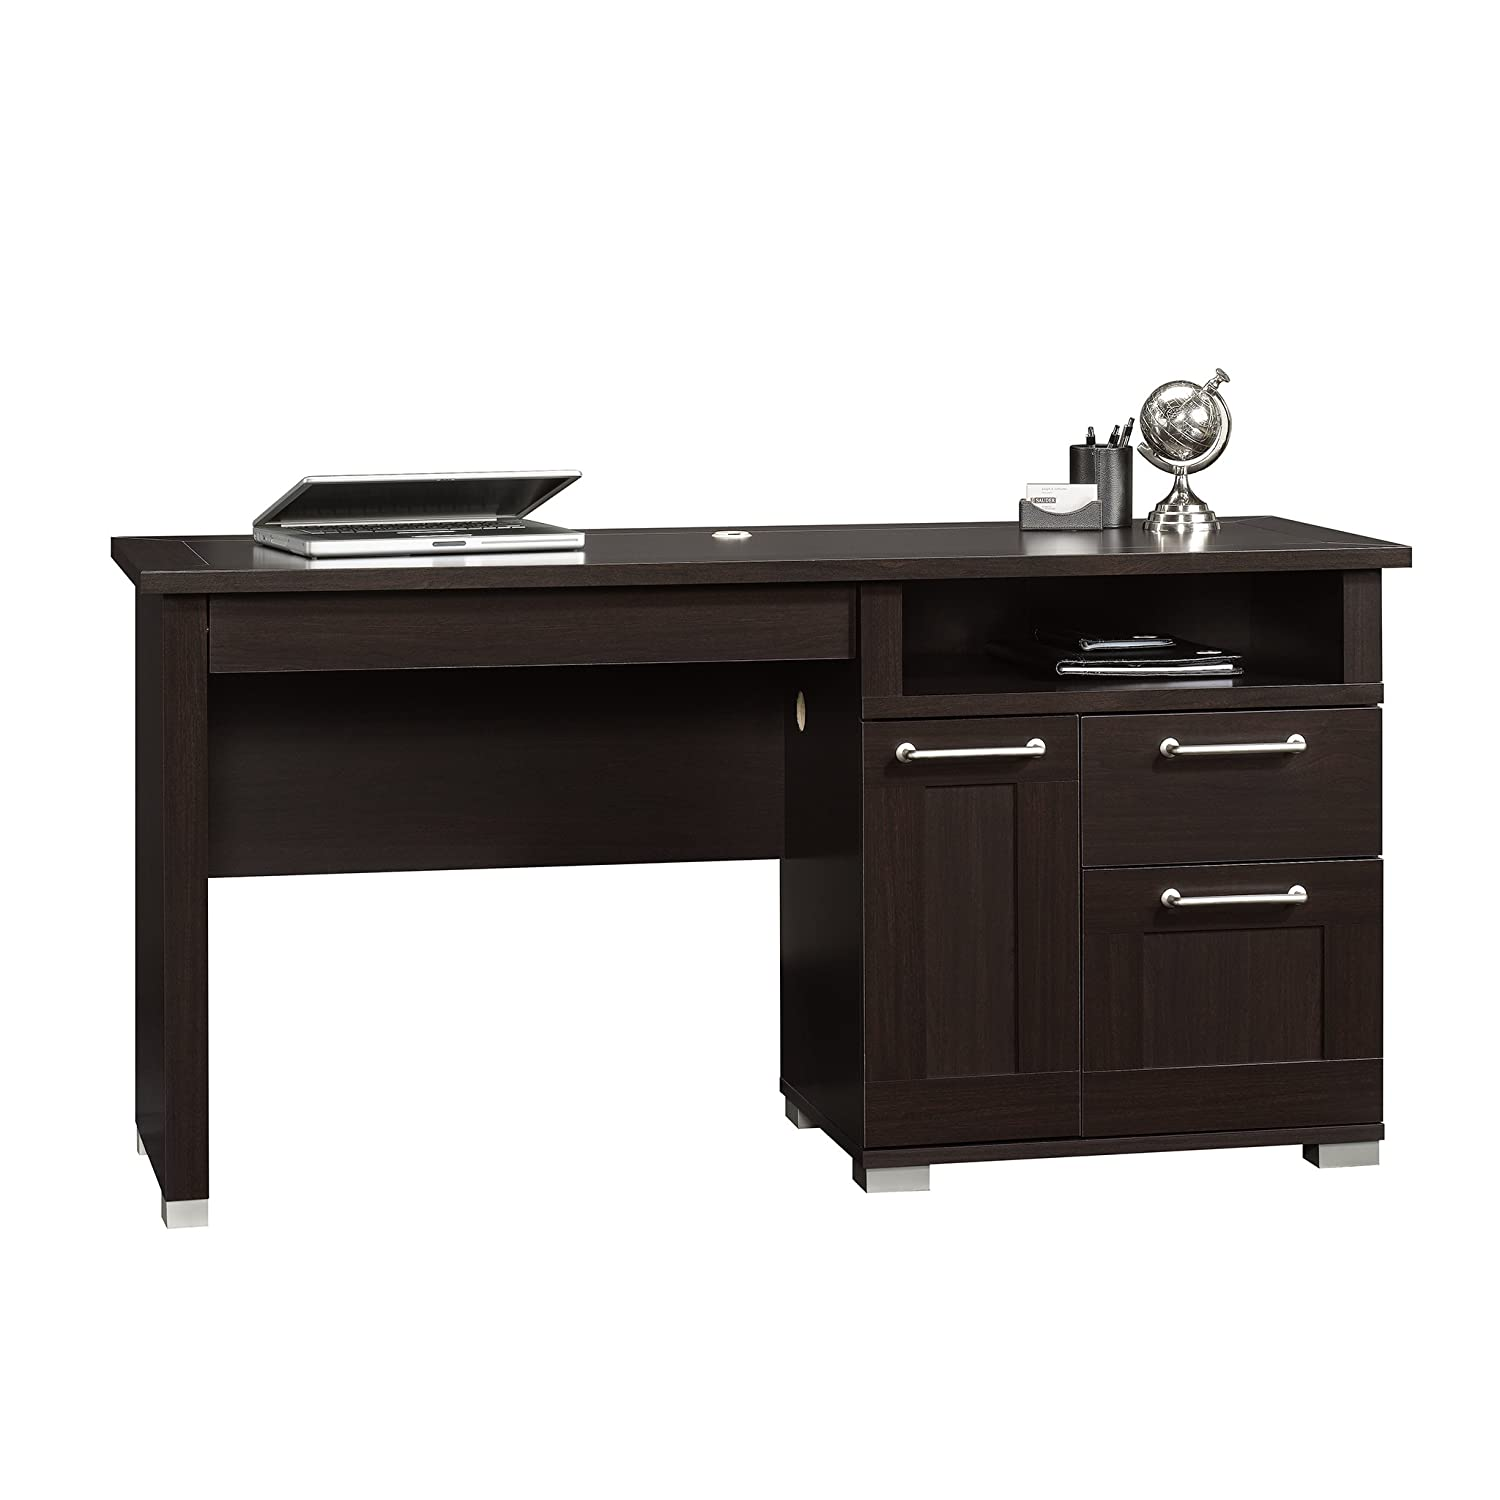 com dp amazon desk town dining select wood sauder kitchen jamocha